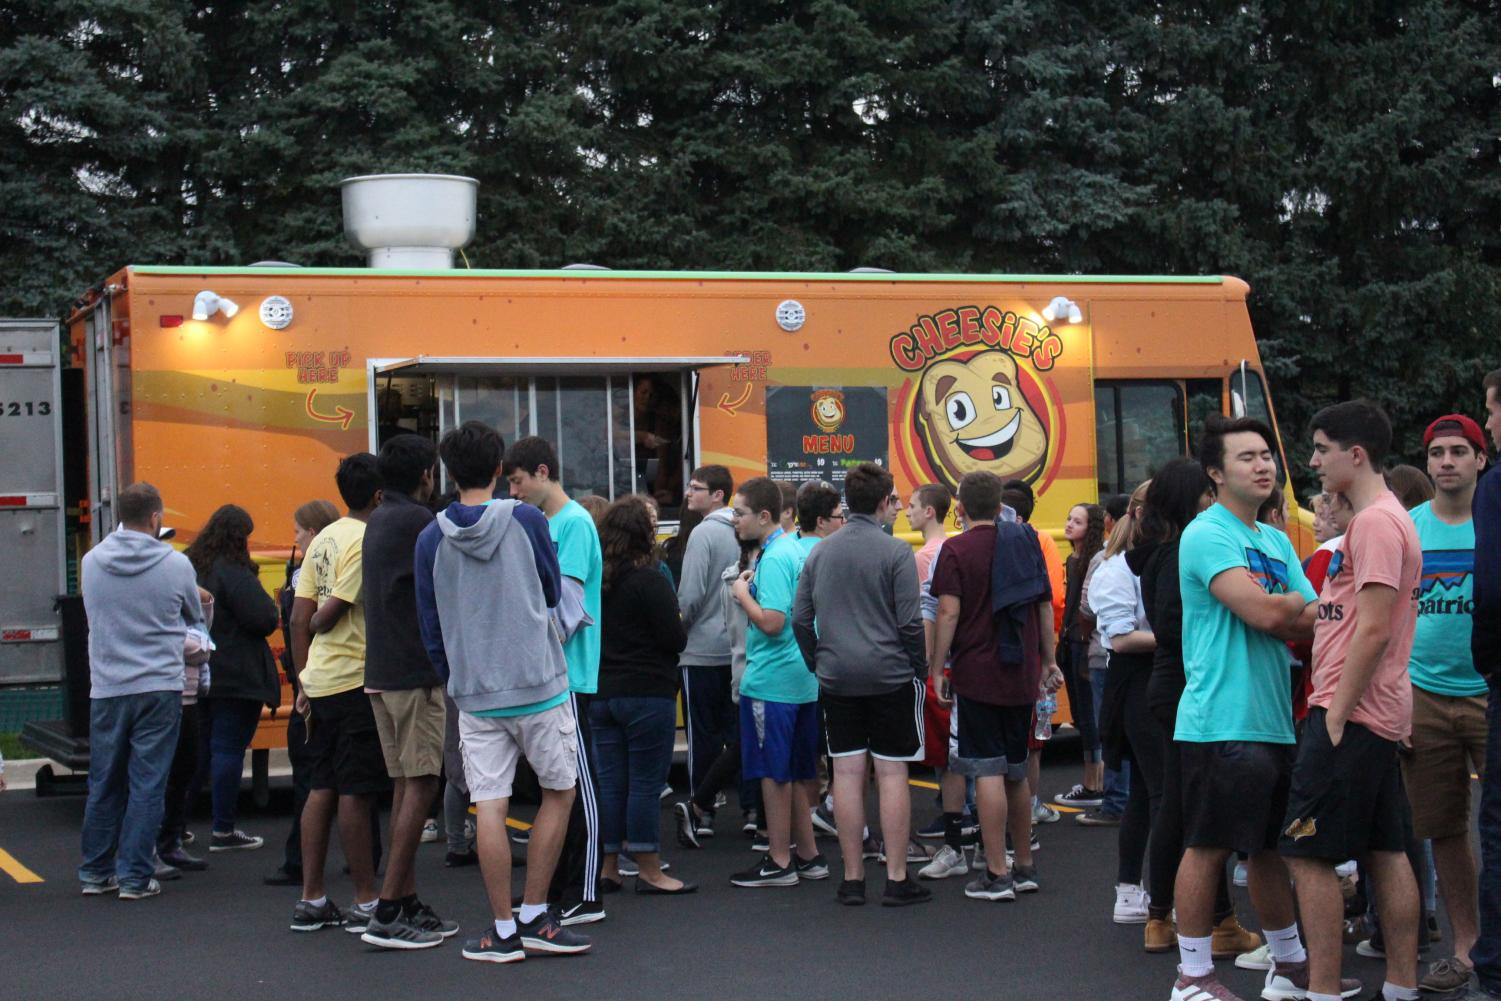 Students line up in front of Cheesie's food truck. Streetfest had a variety of food available including tacos, soul food, and bundt cakes.